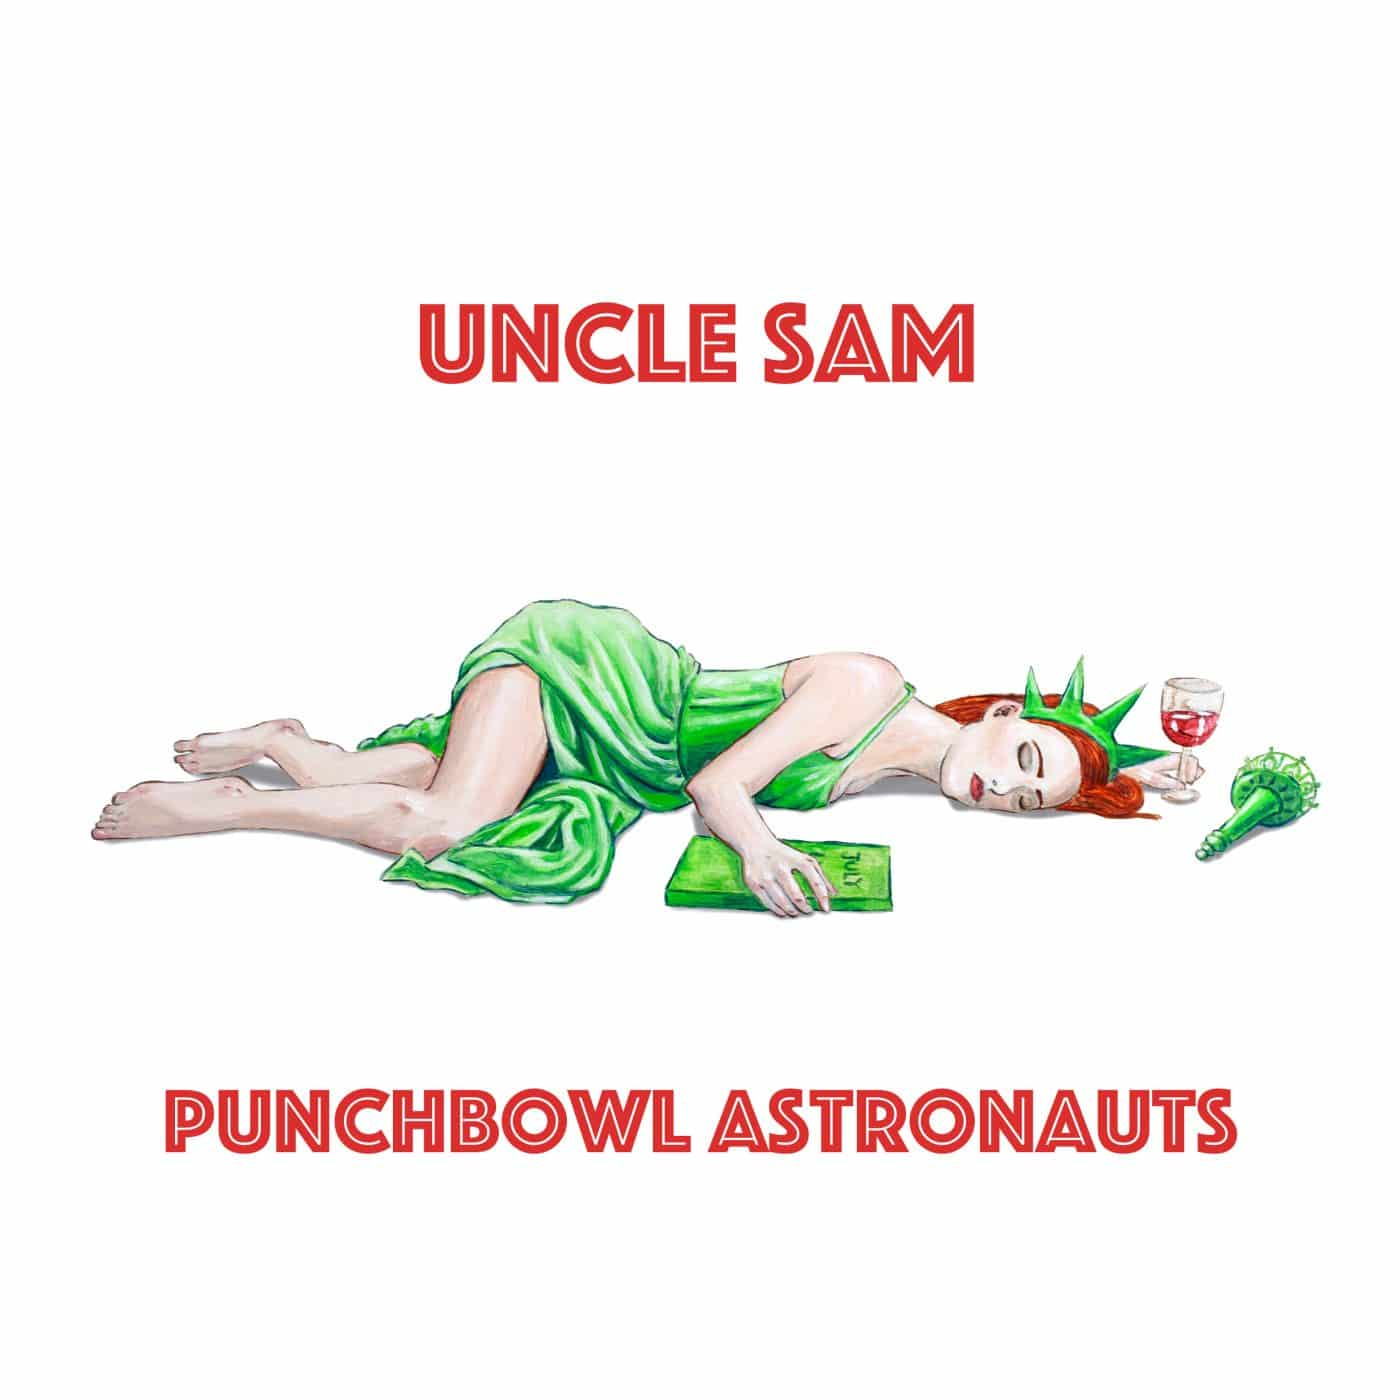 Punchbowl Astronauts - Uncle Sam